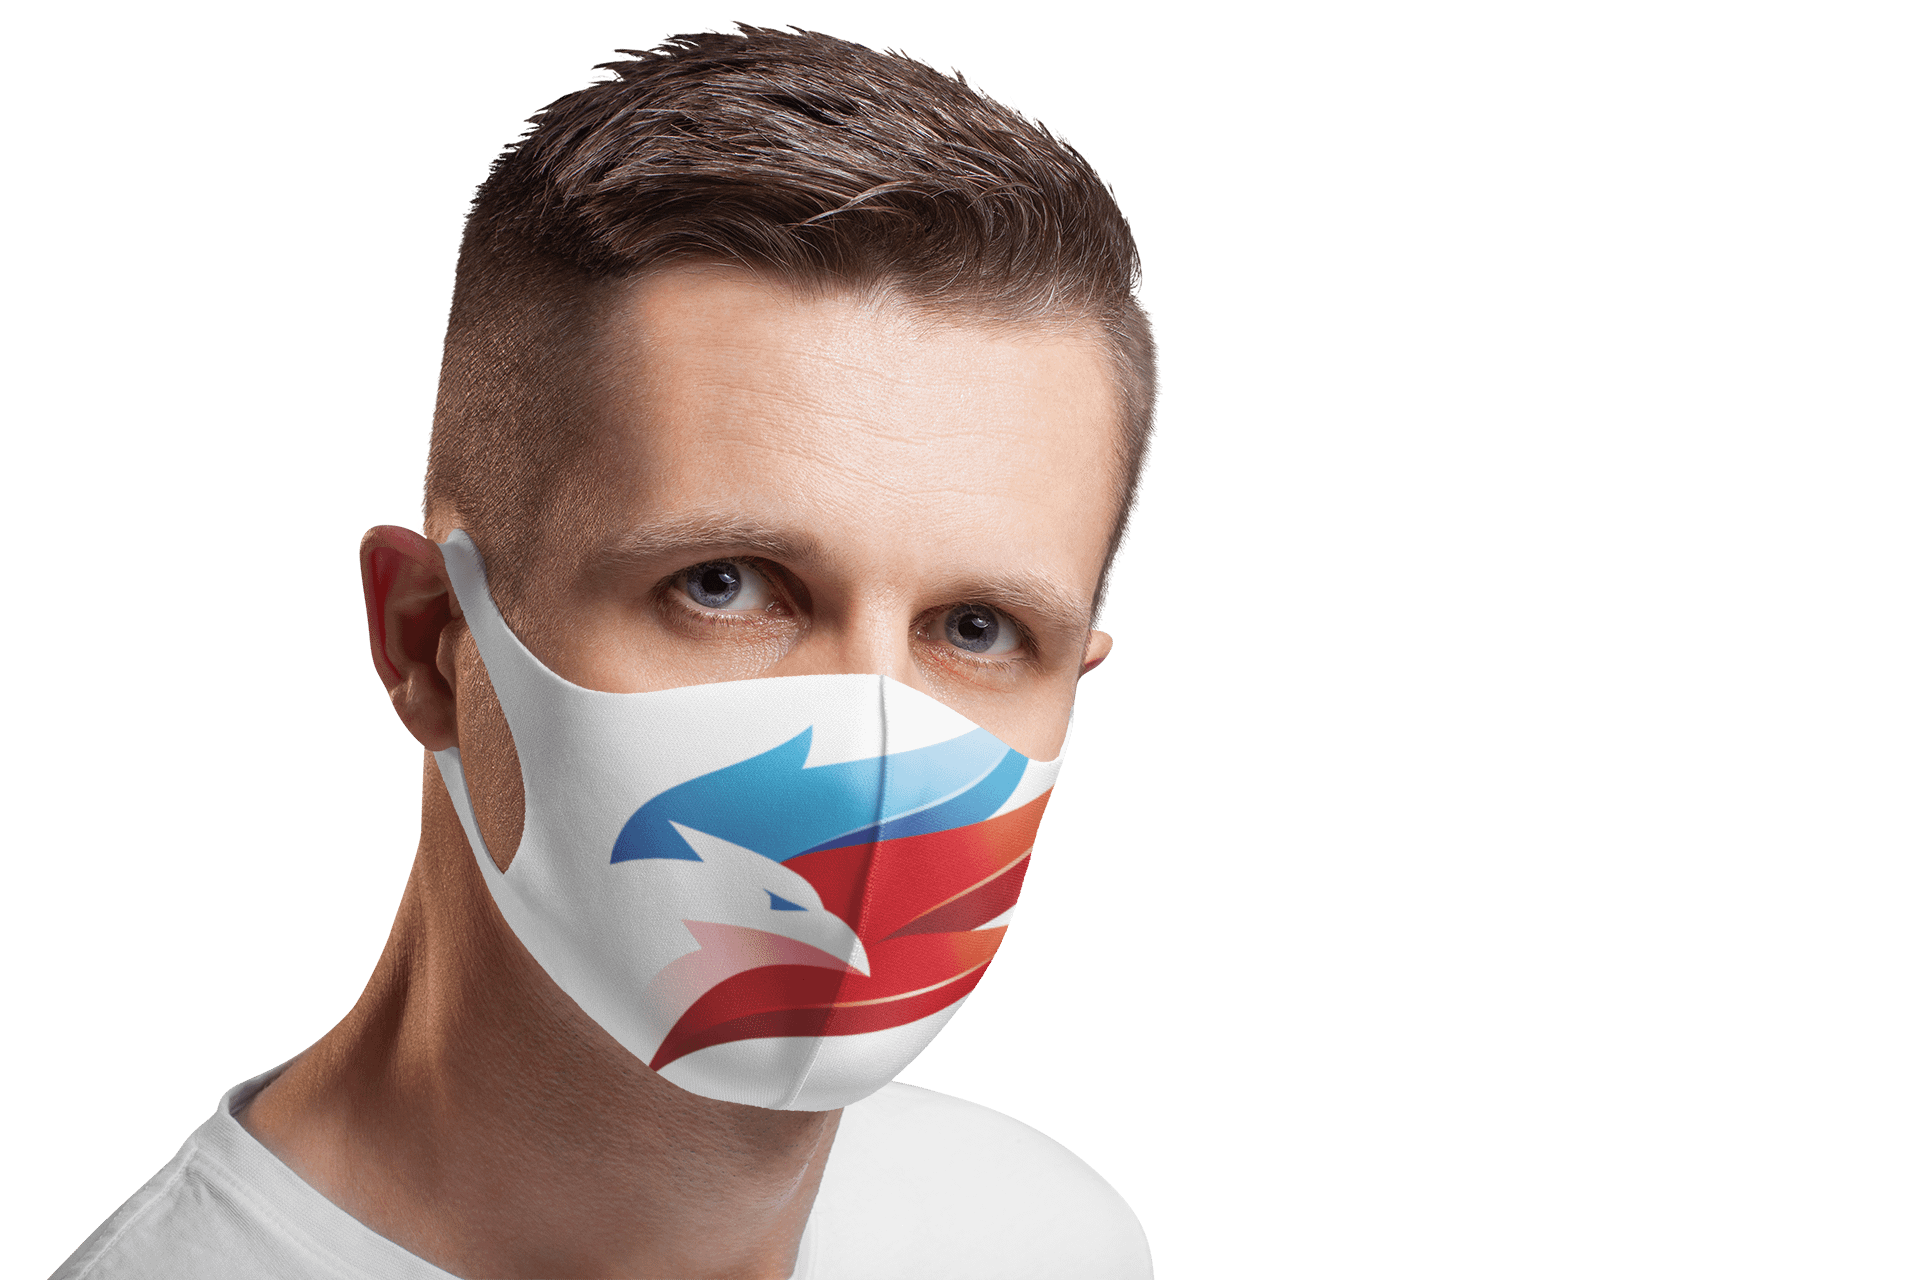 face-mask-mockup-featuring-a-serious-man-in-a-studio-4988-el1